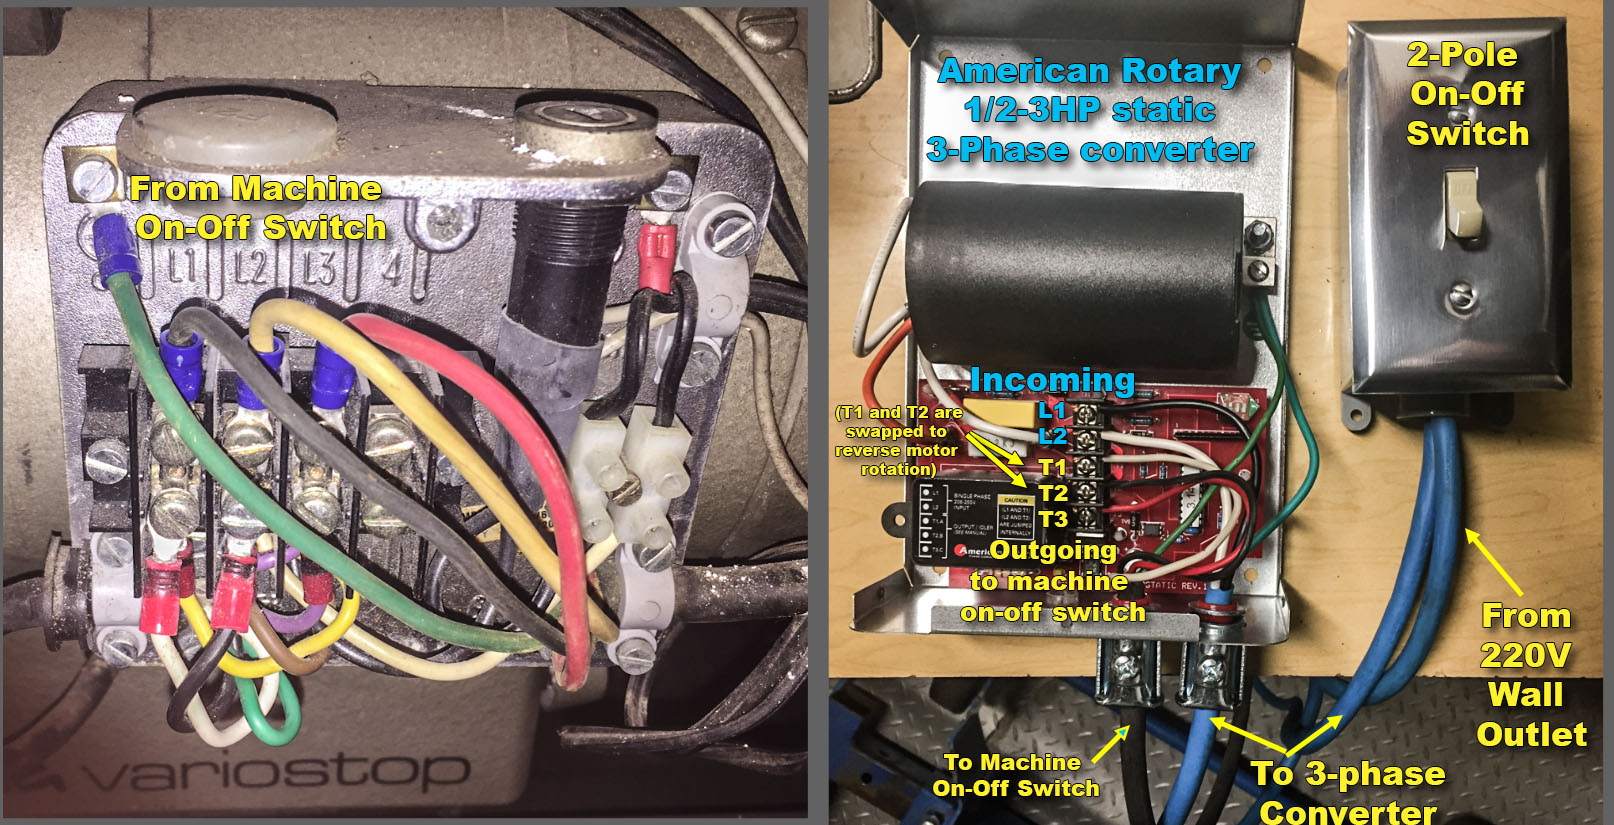 Converting Efka 3 Phase To Single Without Convertor Leather Sewing Mitsubishi Electric Motor Wiring Diagram I Did Swap T1 And T2 Wires Inside The Converter Change Rotation Of You Will Read In Many Places That A